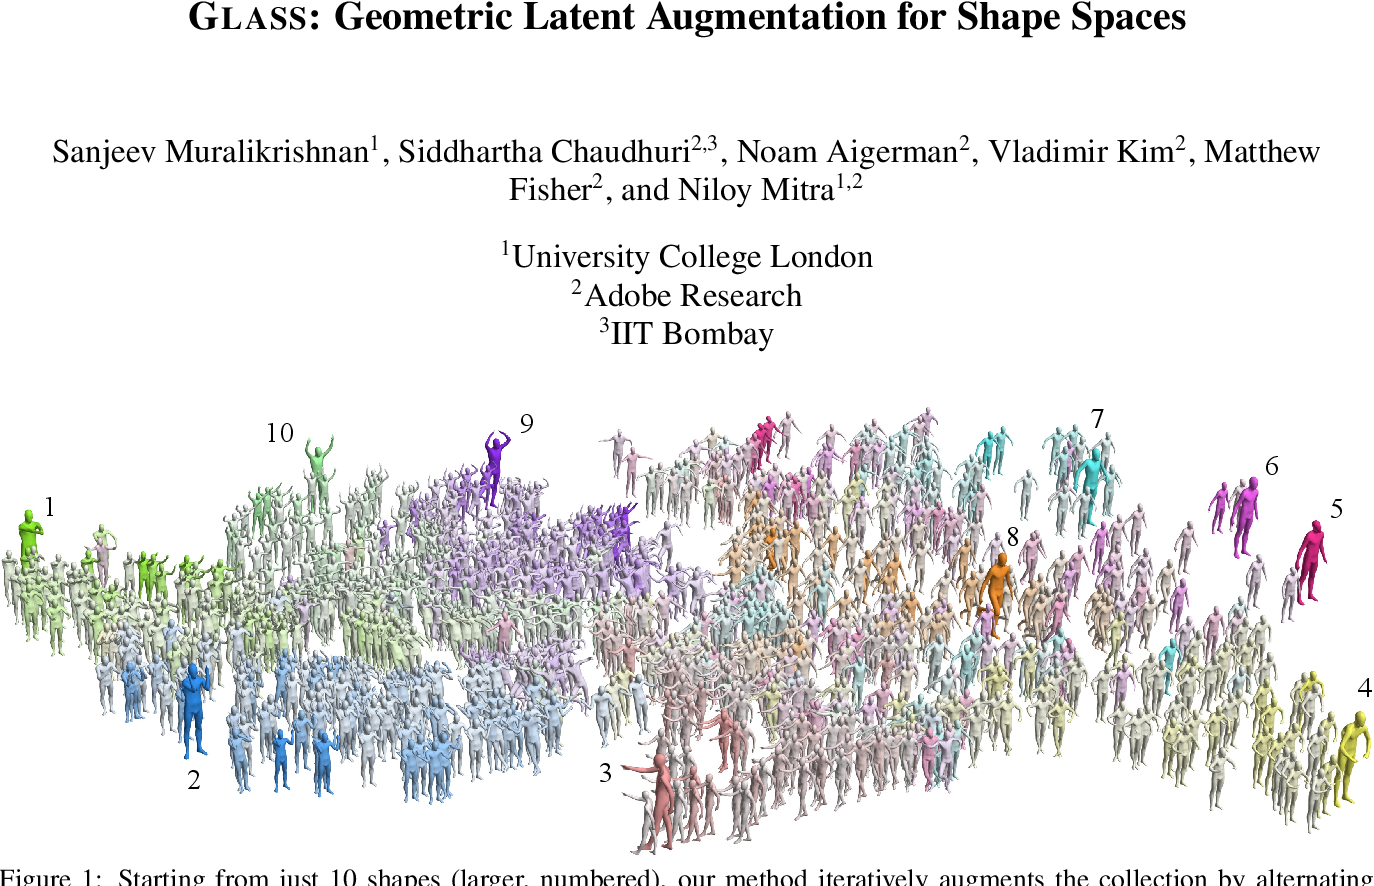 Figure 1 for GLASS: Geometric Latent Augmentation for Shape Spaces